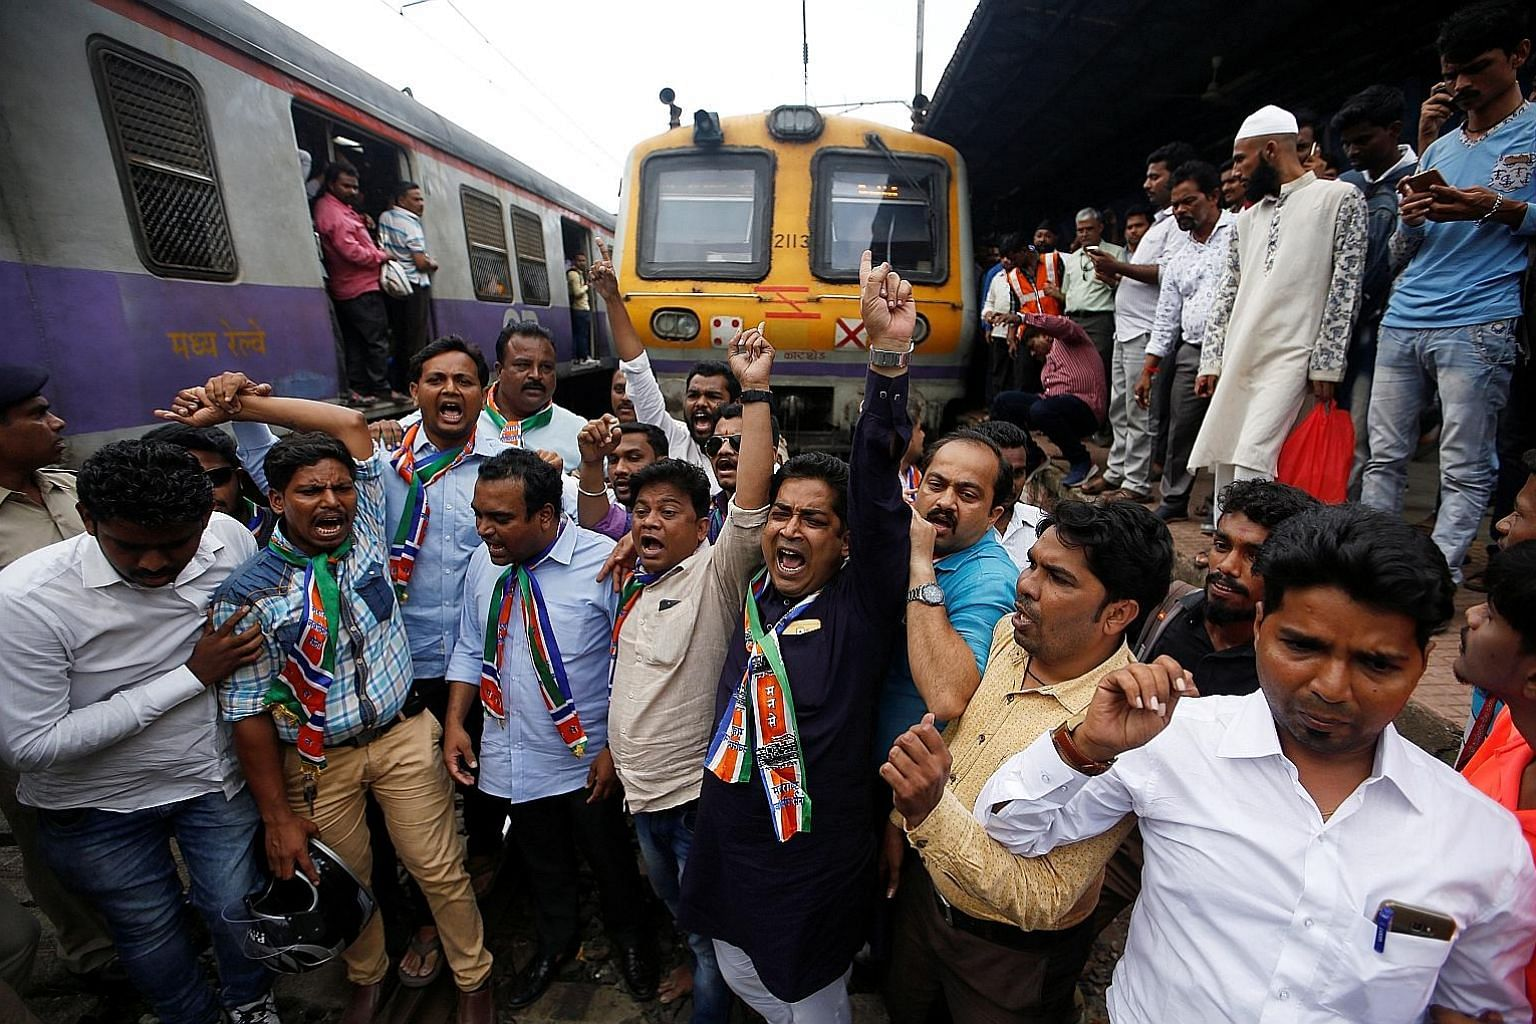 Supporters of the Maharashtra Navnirman Sena party blocking a railway track to protest against record high petrol and diesel prices in Mumbai.